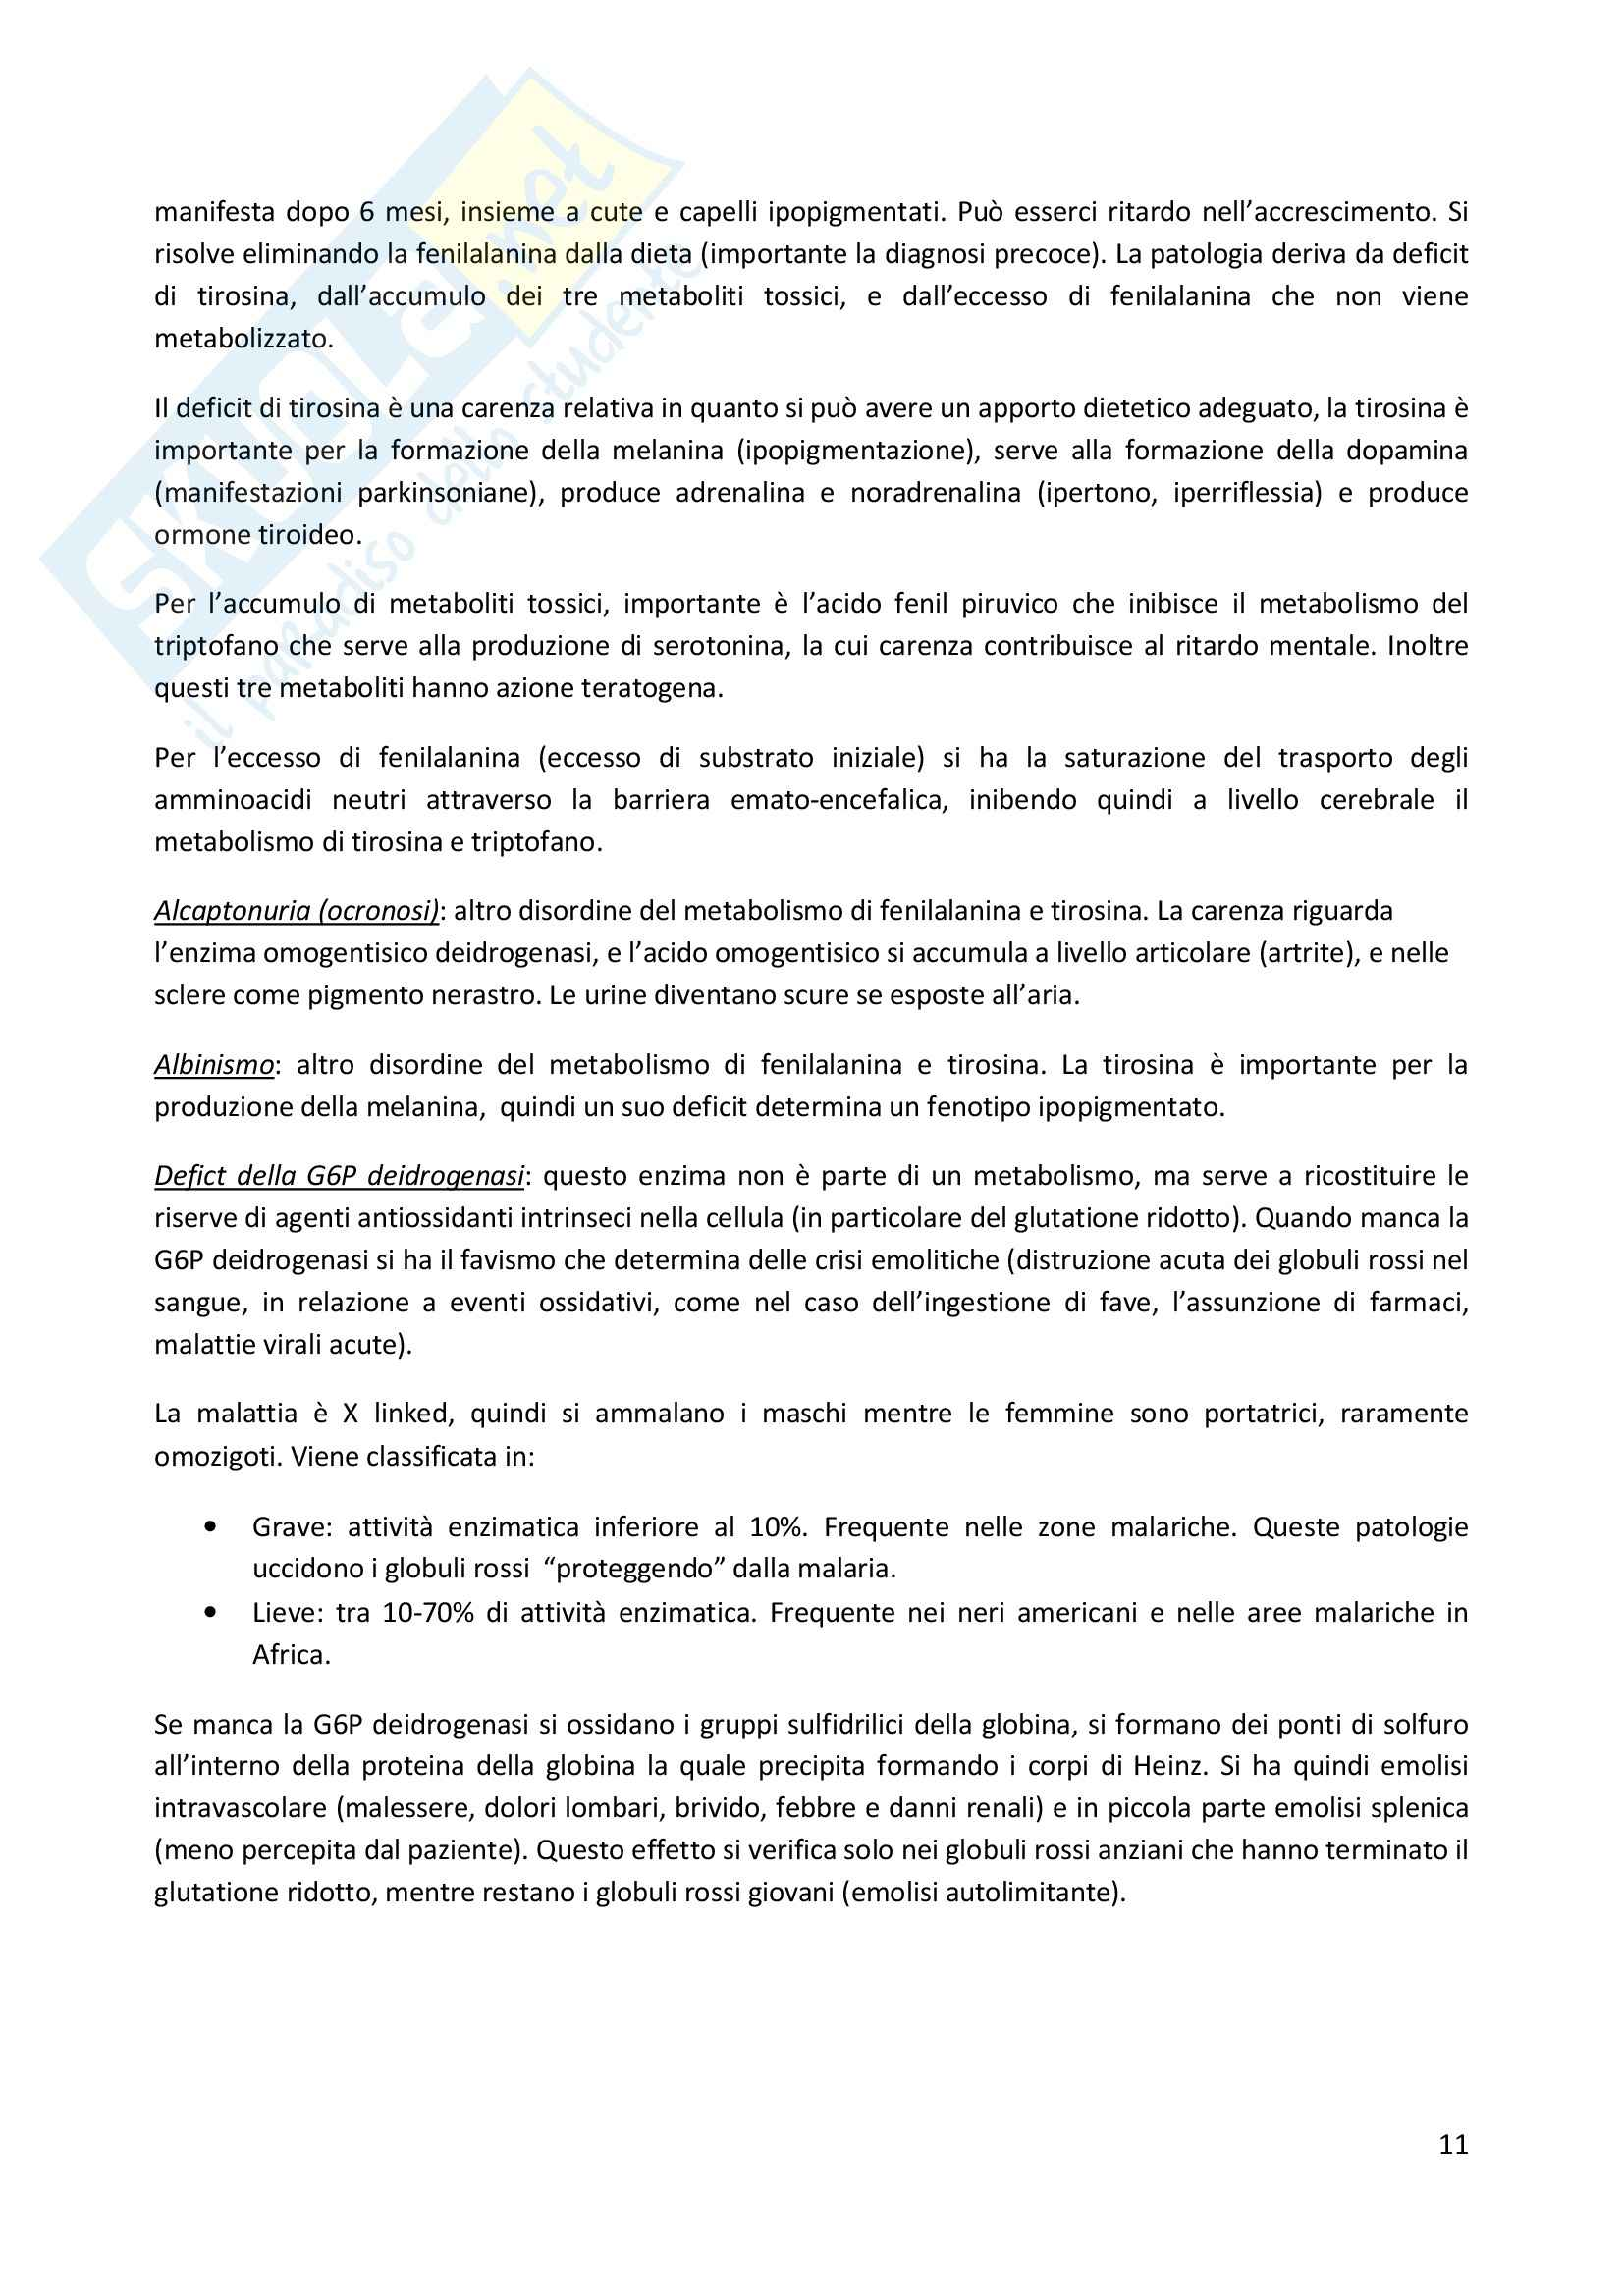 Patologia generale - Cause intrinseche Pag. 11